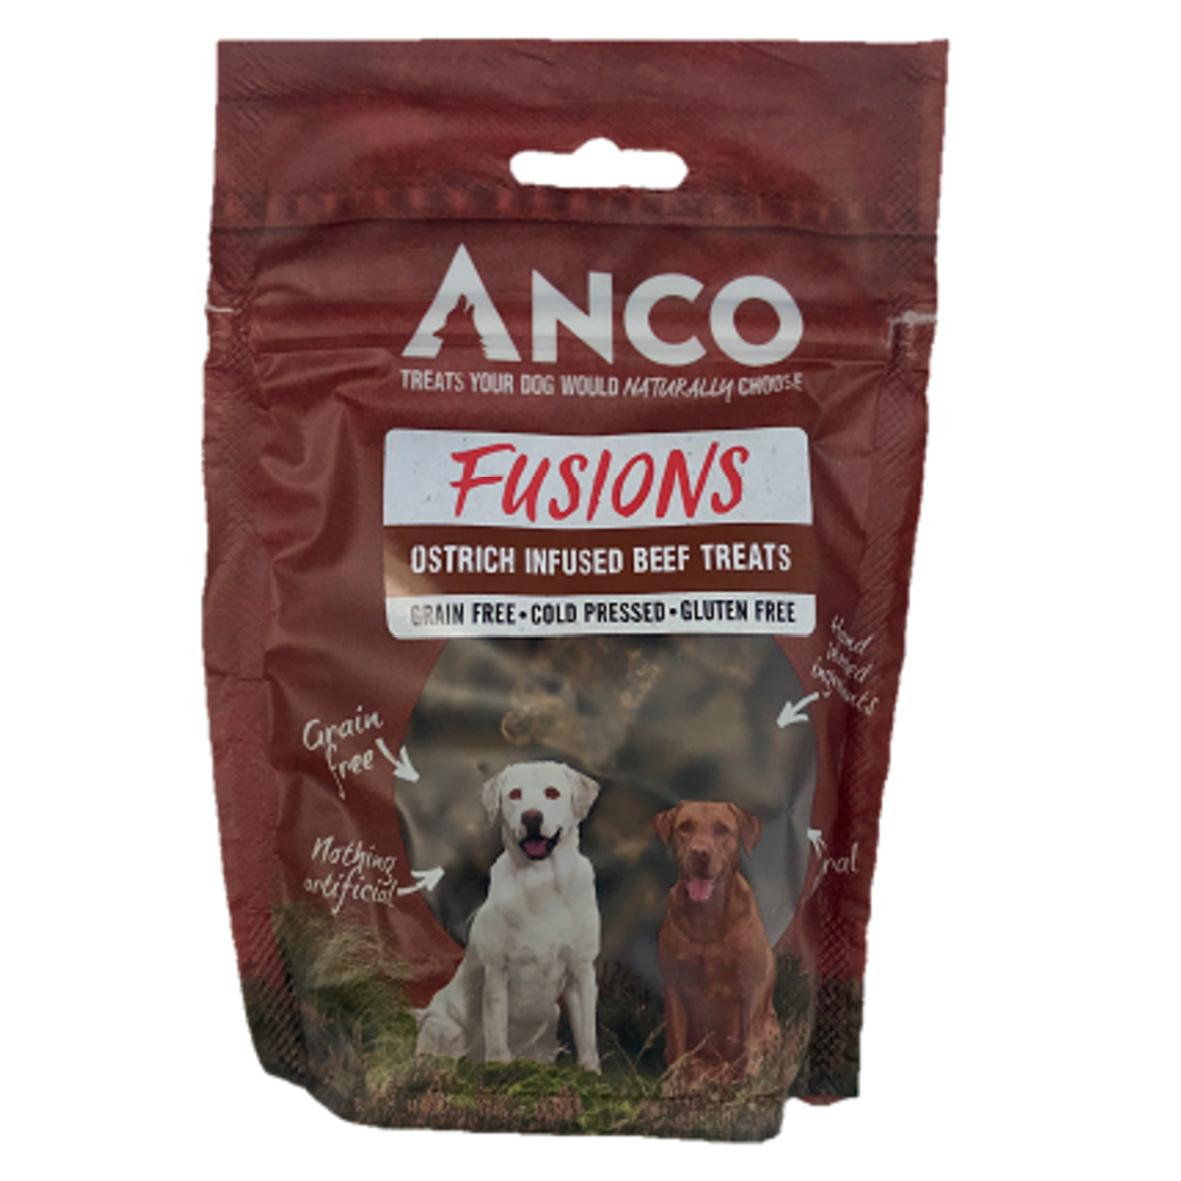 Anco Fusions Ostrich Infused Beef Treats 100gm